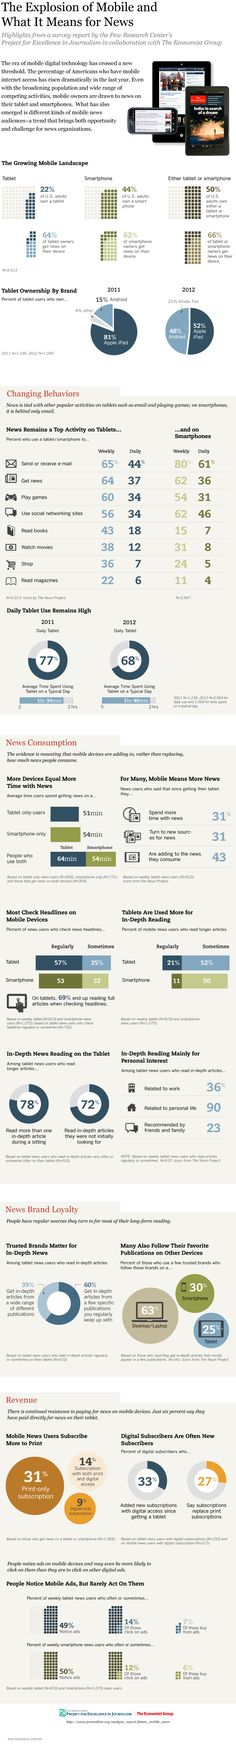 #infographic - news remains a top activity on tablets... and on #smartphones